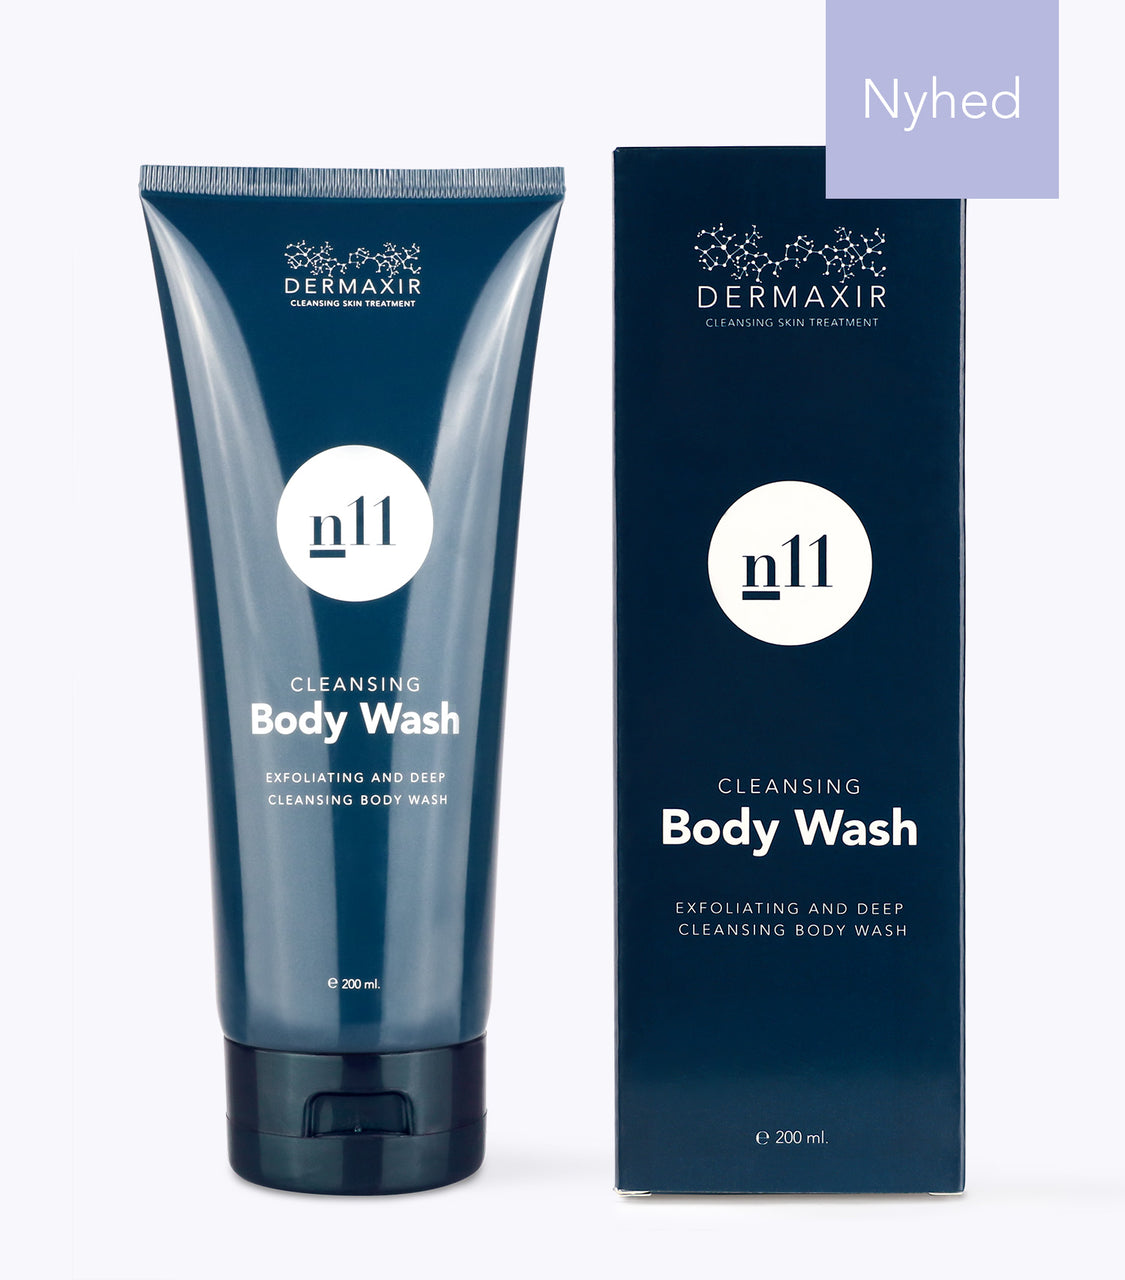 n11 Cleansing Body Wash